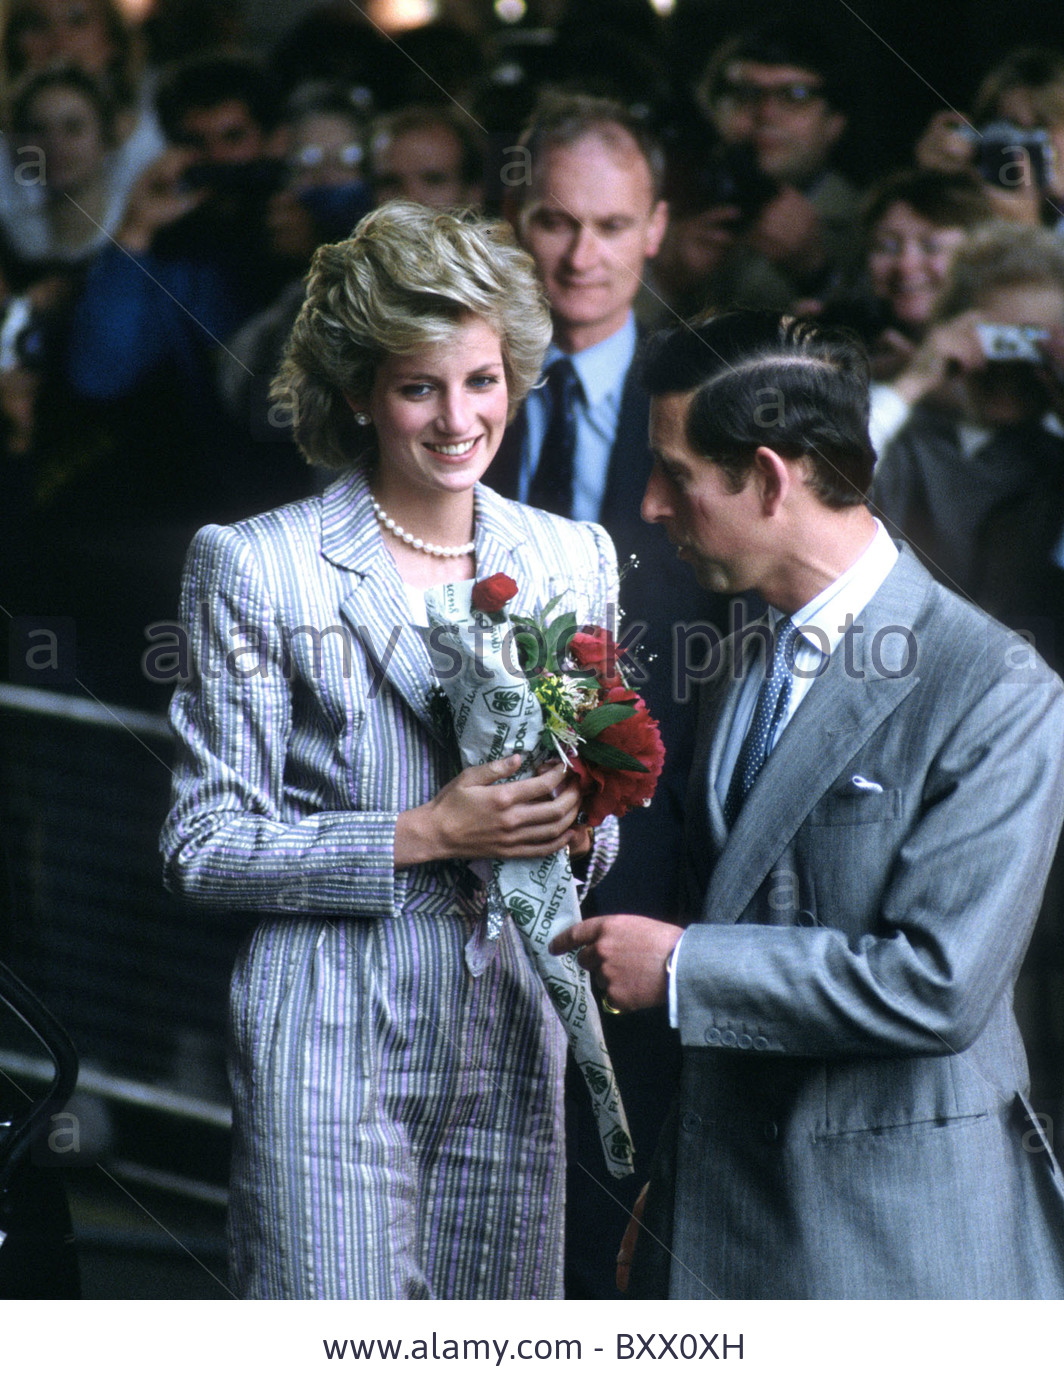 Prince Charles Photo (C) GETTY IMAGES